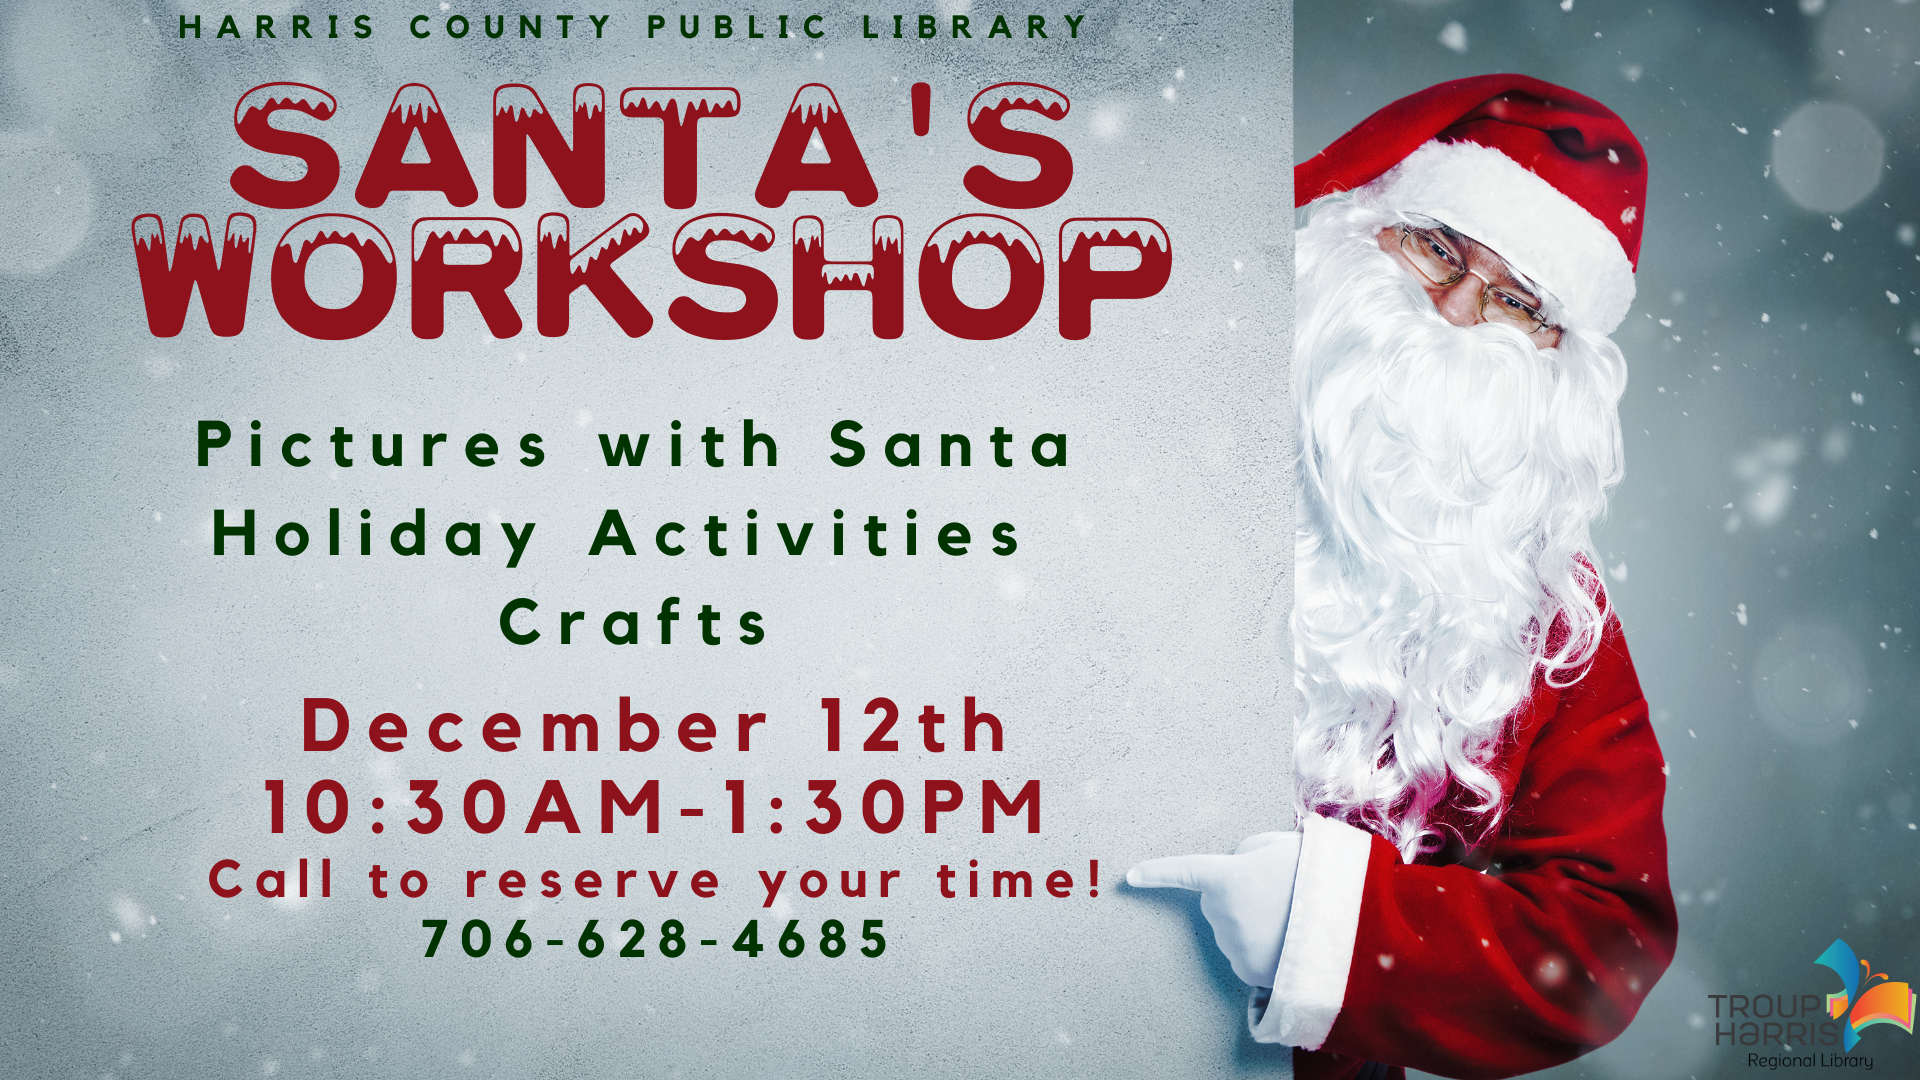 Santa's Workshop; Pictures with Santa, activities and crafts. December 12, 10:30 am - 1:30 pm Harris County Library